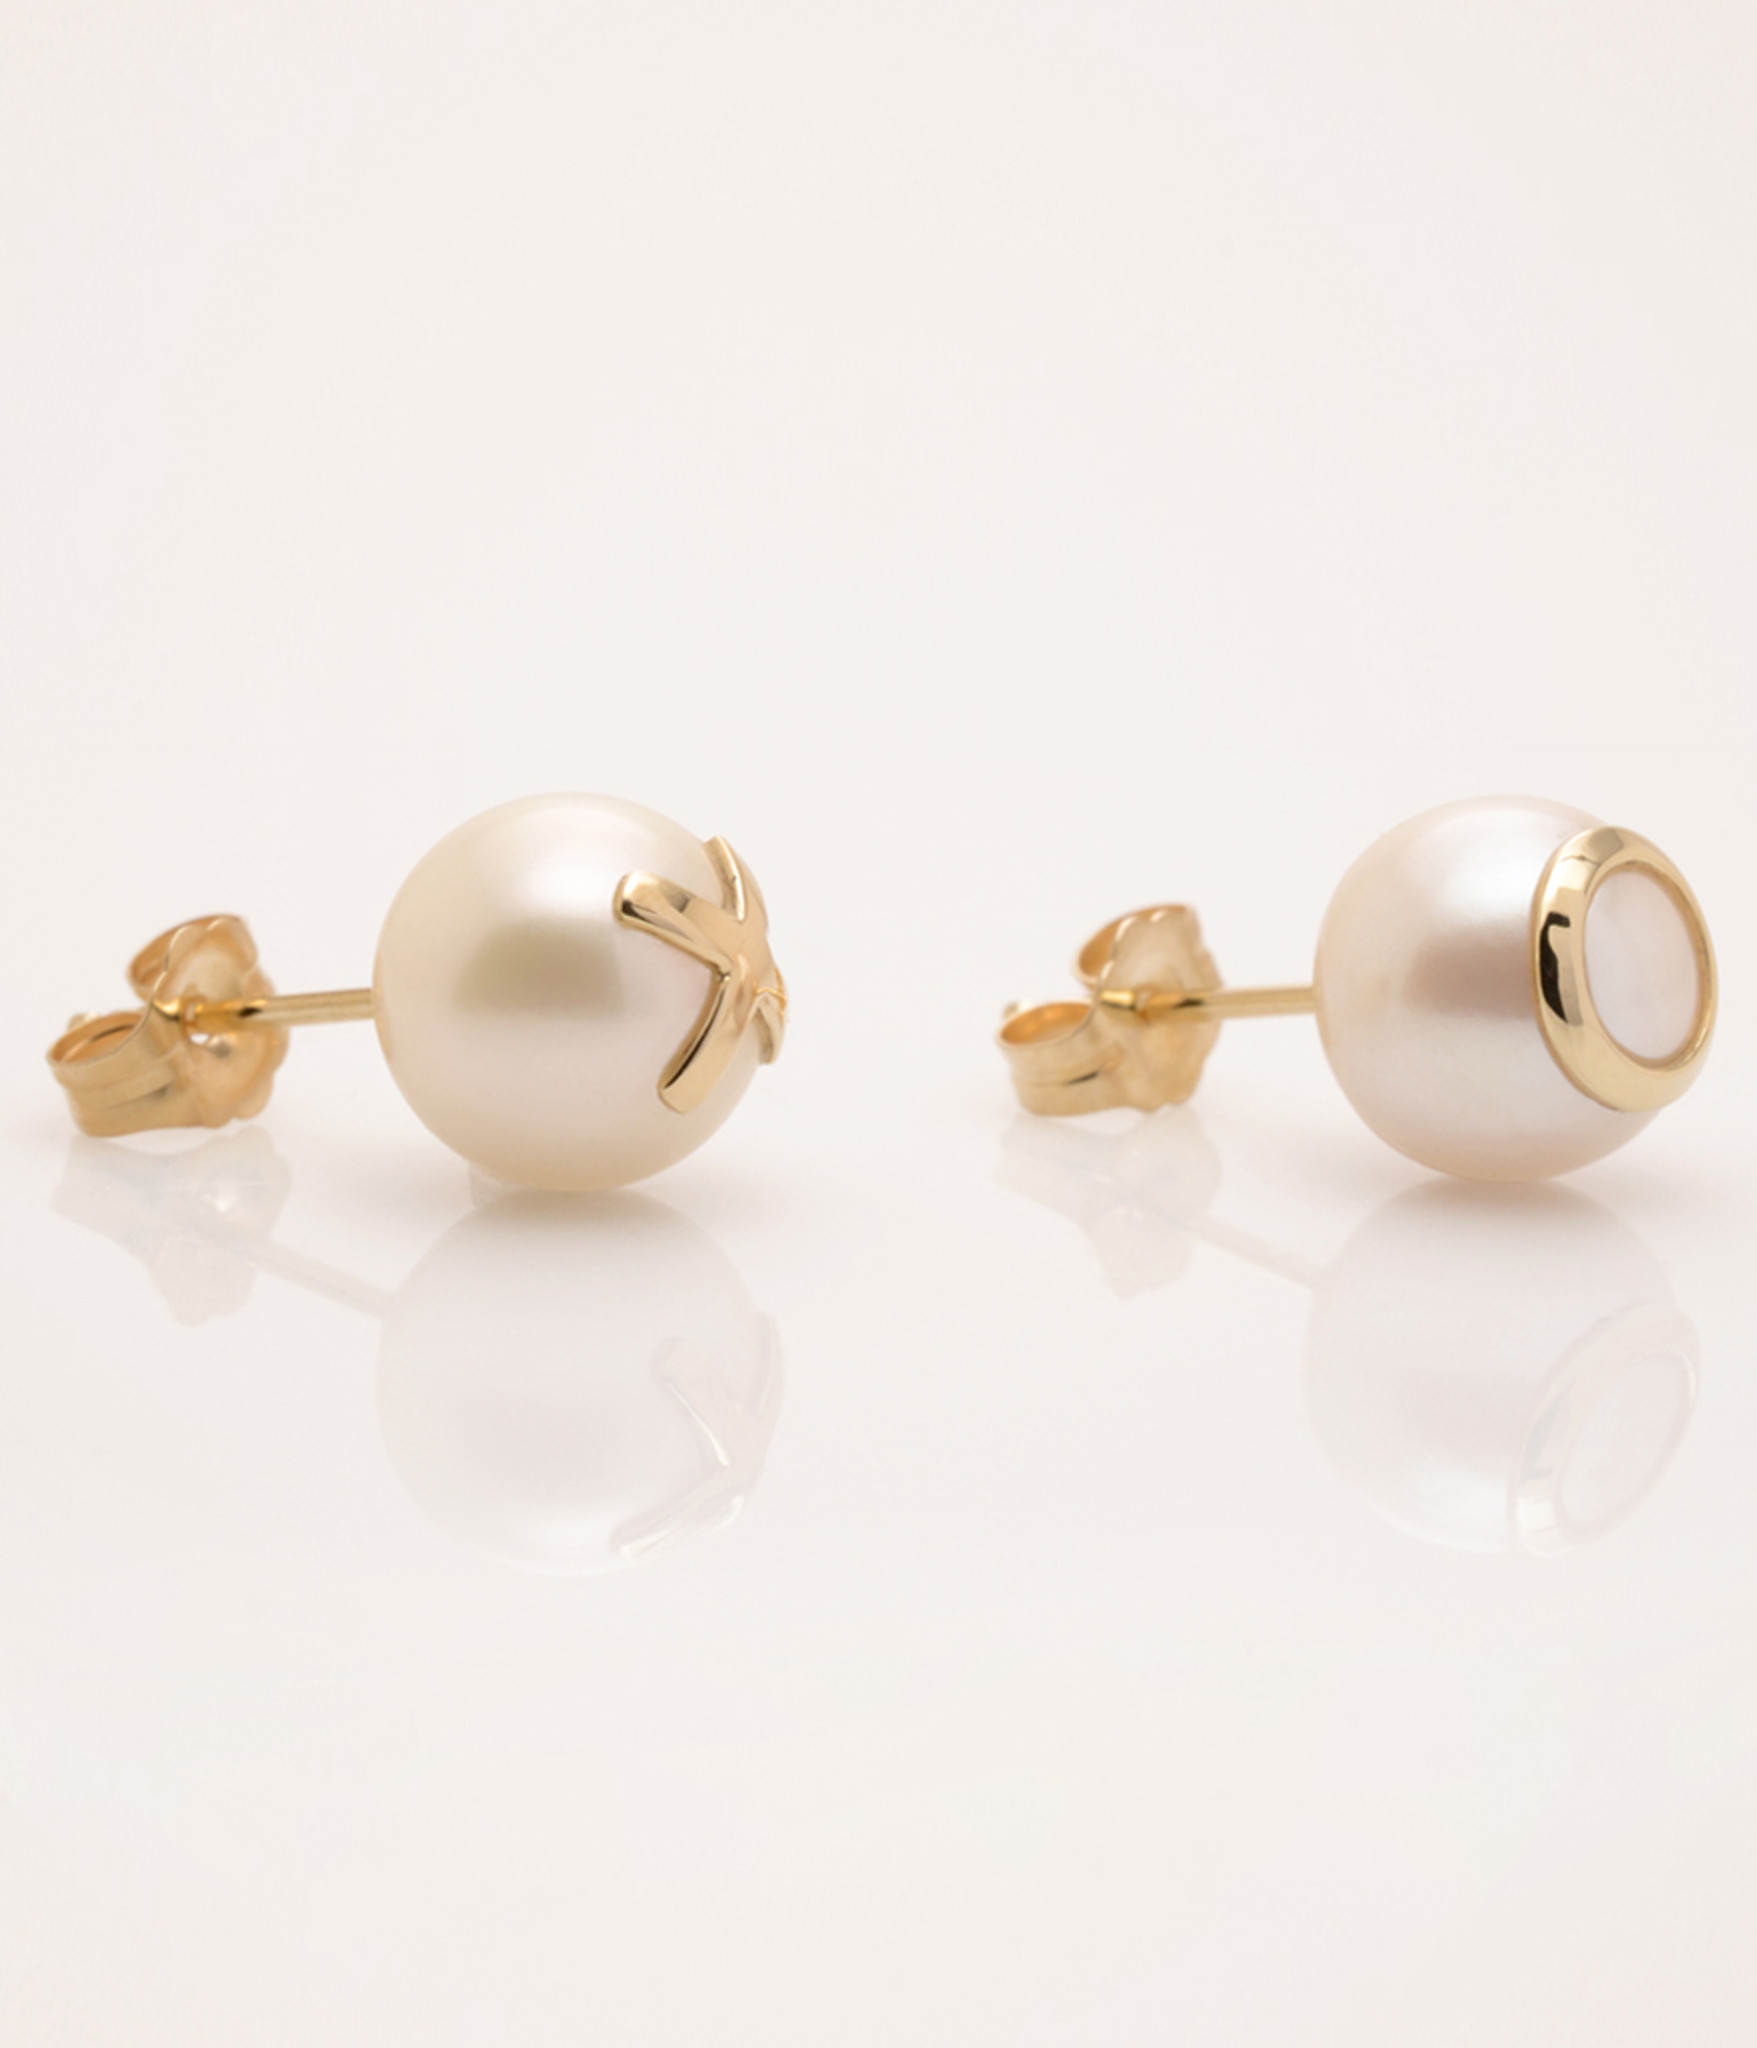 Side view of Cultured Freshwater Pearl Earrings with 14k Gold XO Emoji (8-9 mm) by Nektar De Stagni